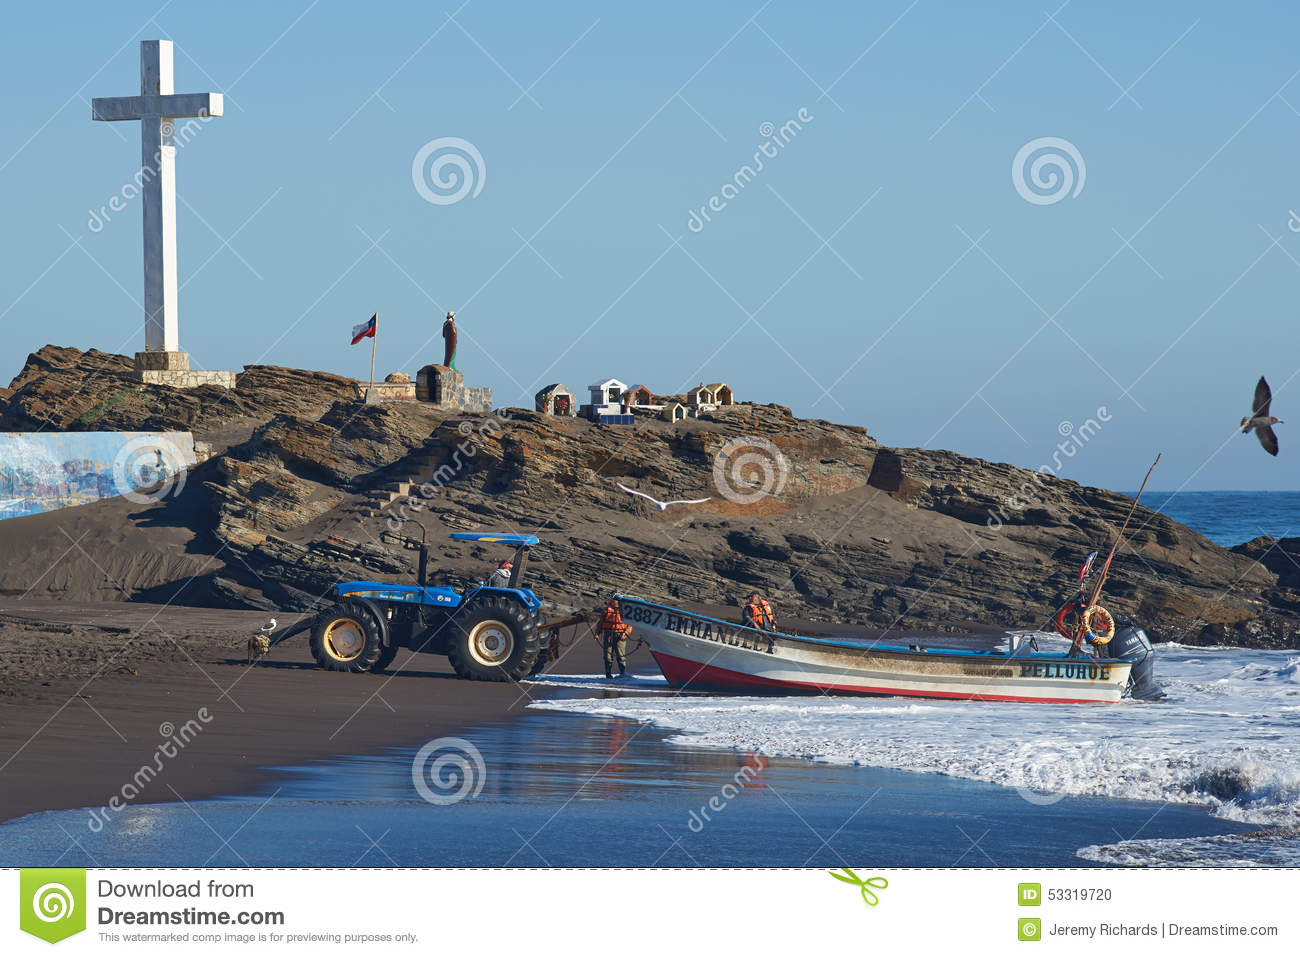 Tractor Pull Boats : Tractor pulling fishing boat editorial image